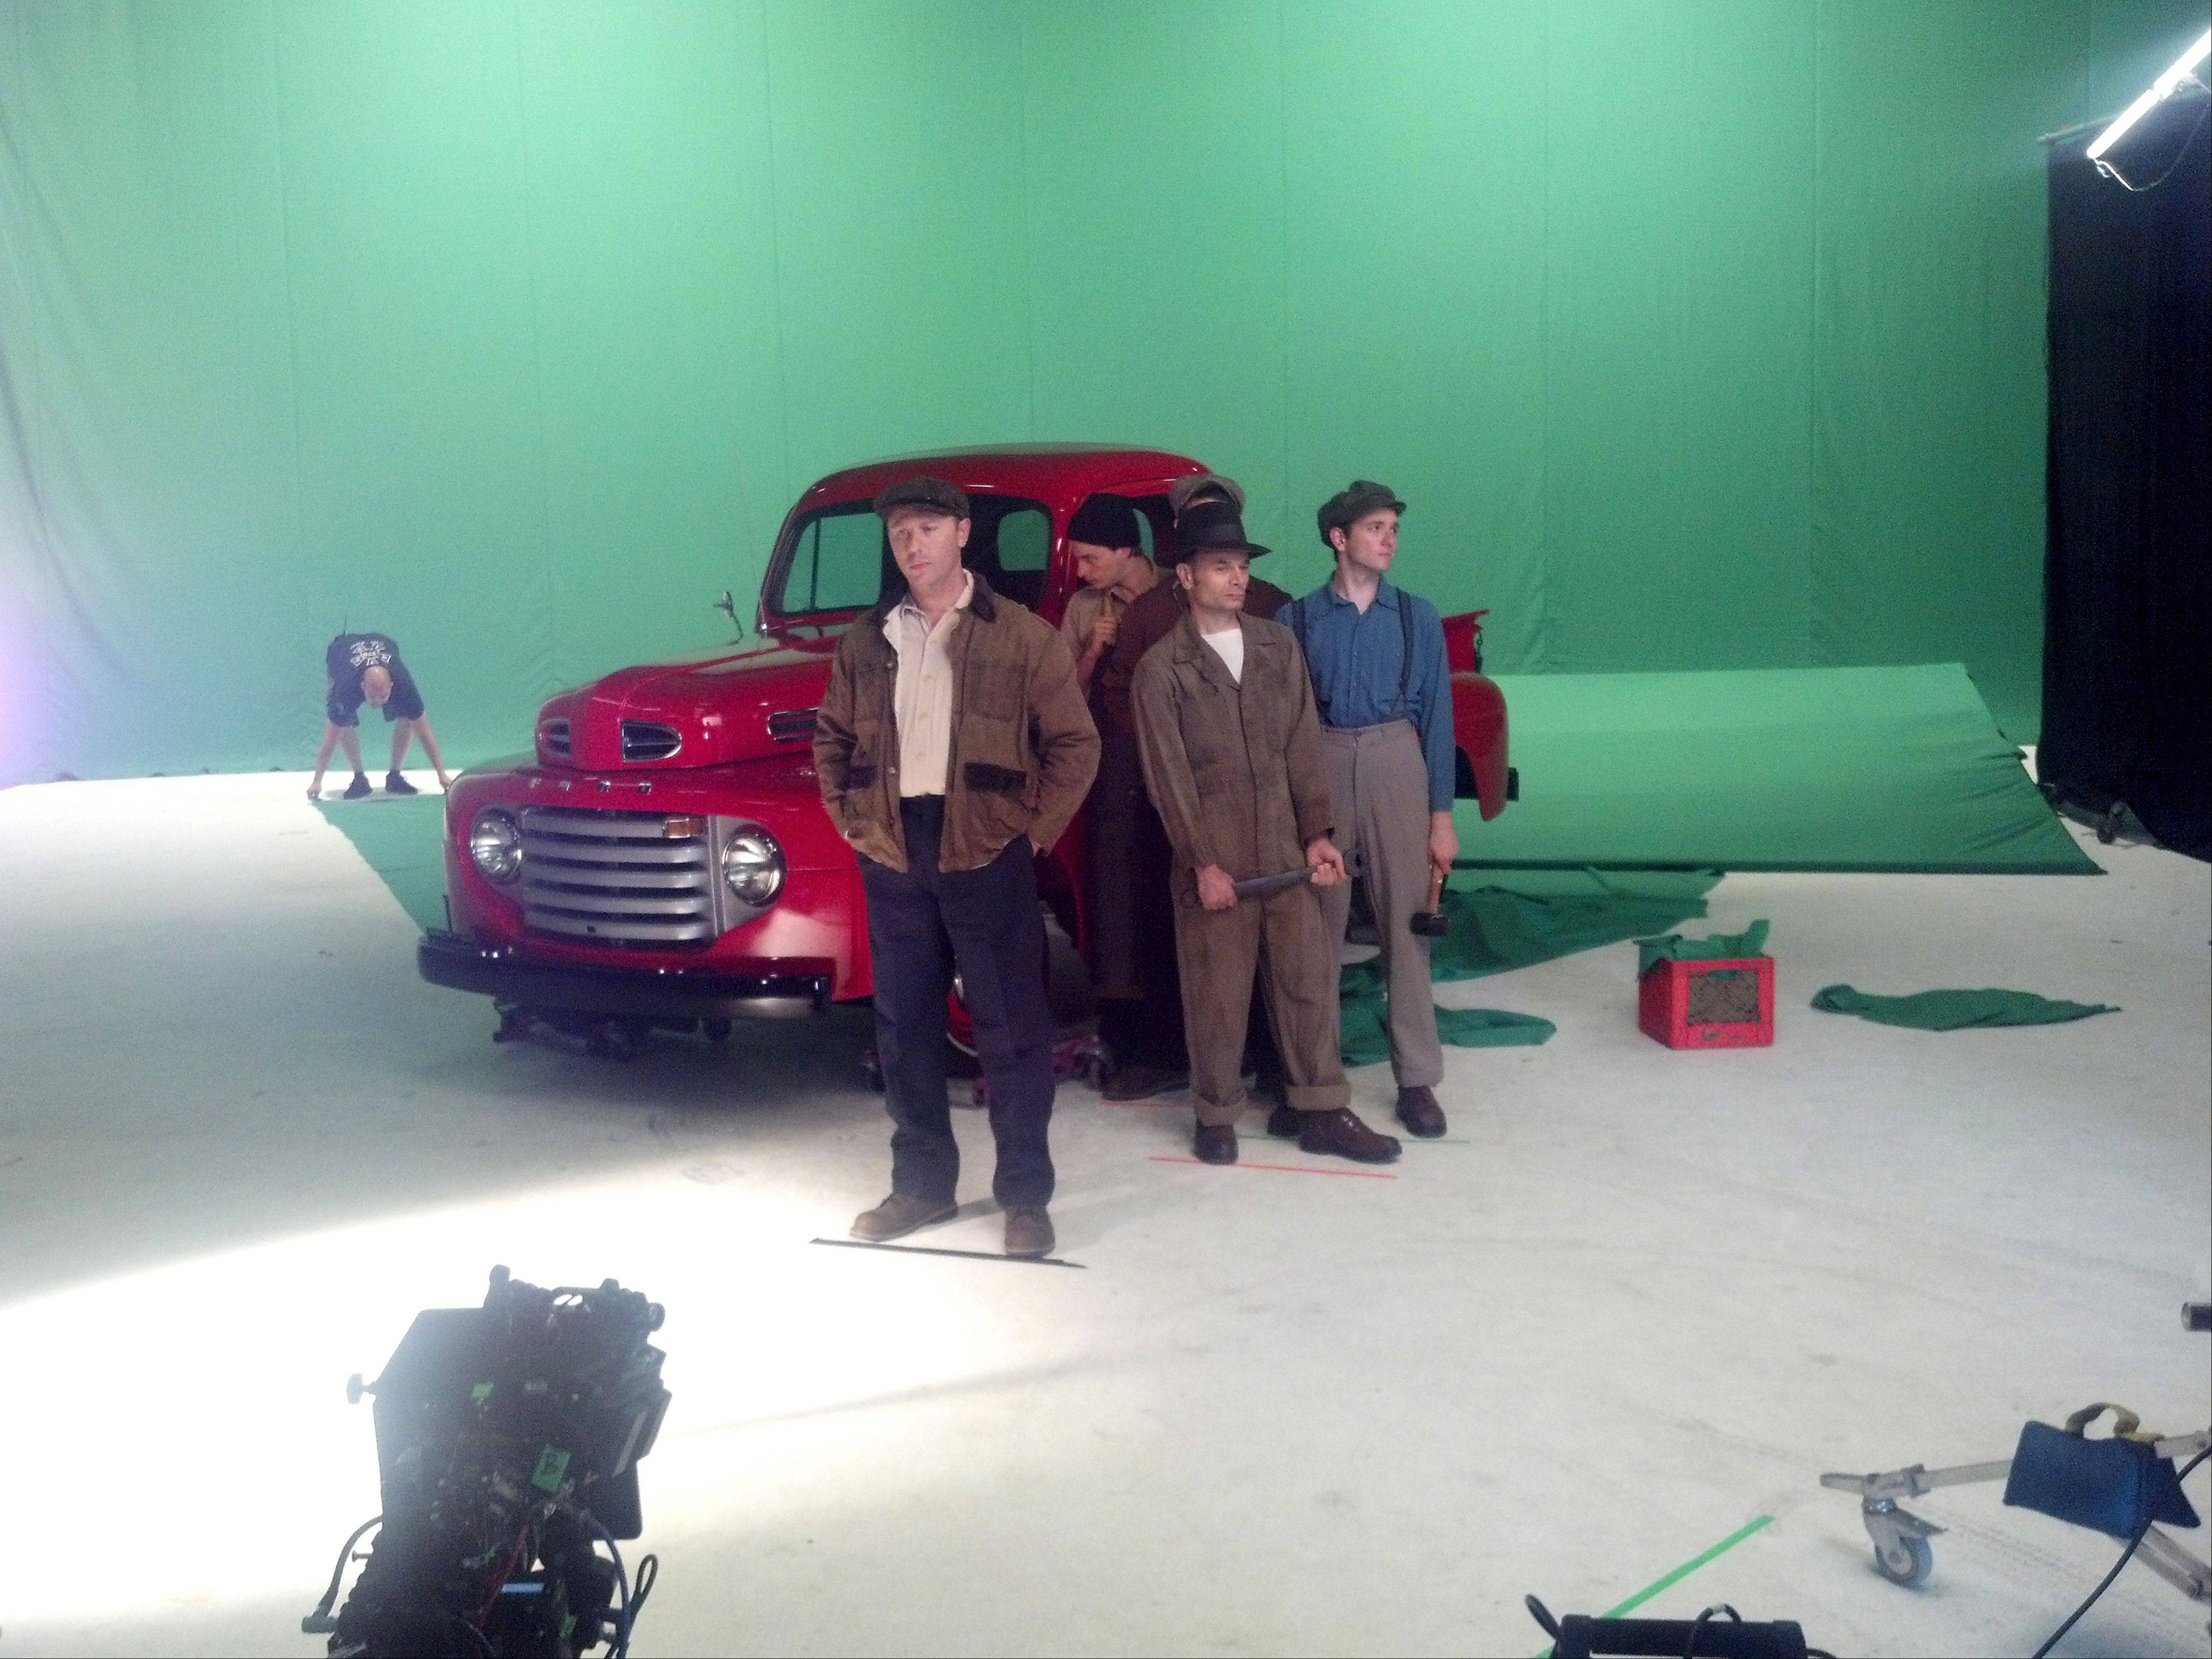 Brad Buell's pickup was recently used to film a Ford commercial that will air in Russia.